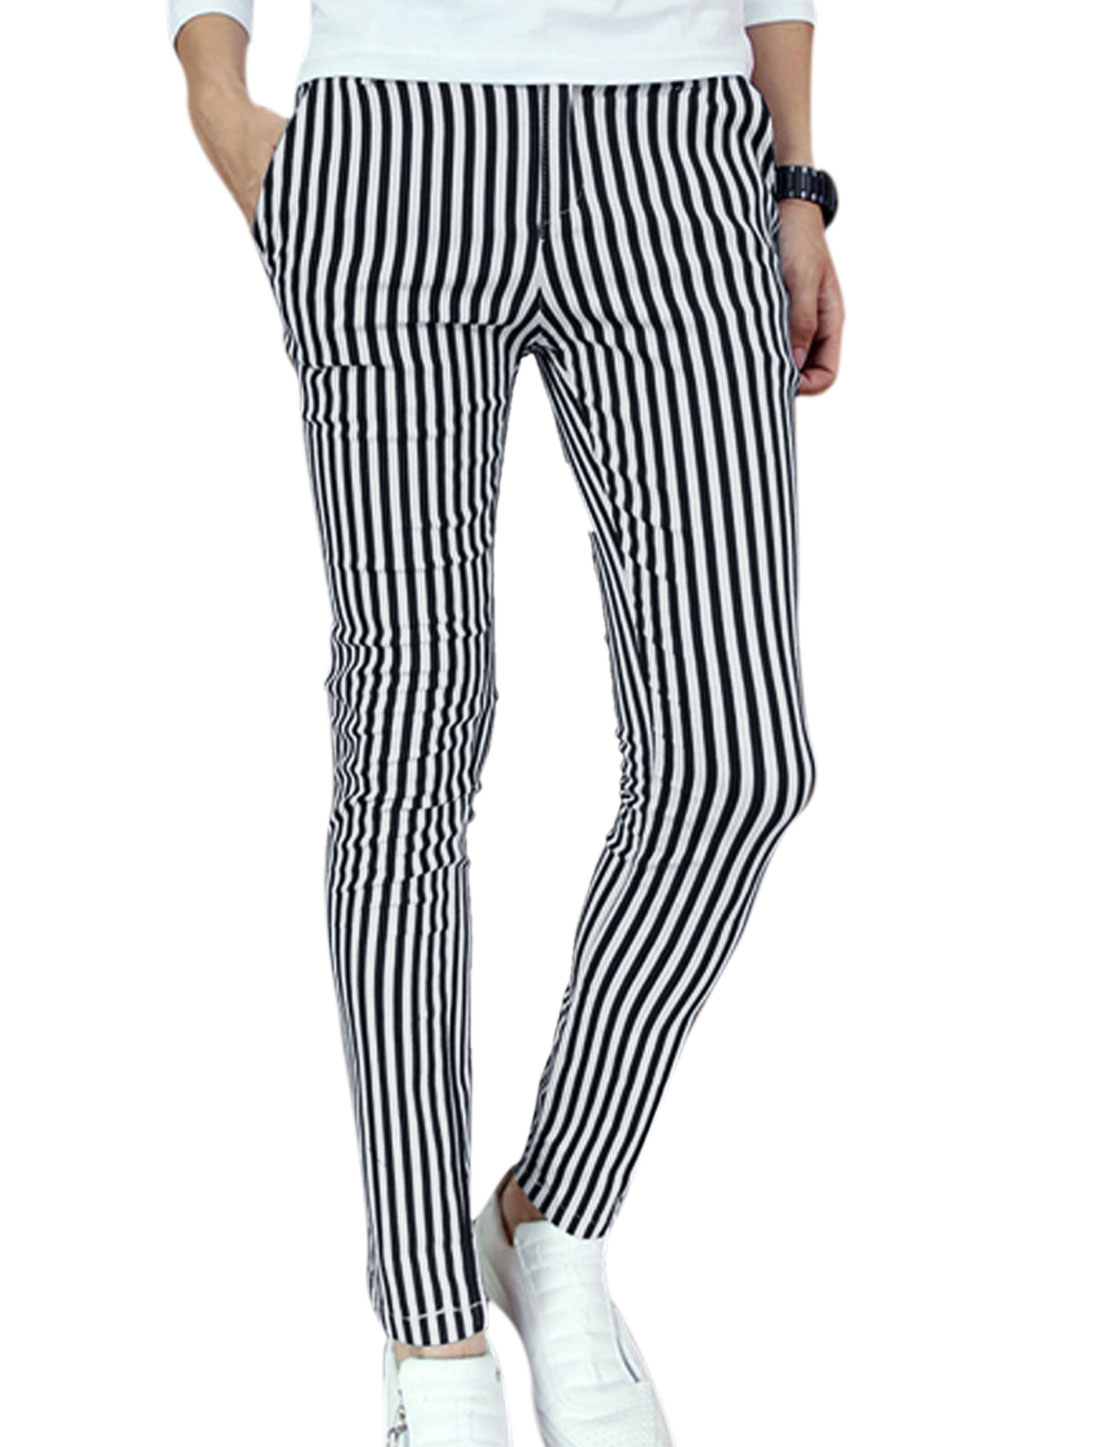 Men Two Hip Pockets All Over Vertical Stripes Print Casual Pants Black White W28